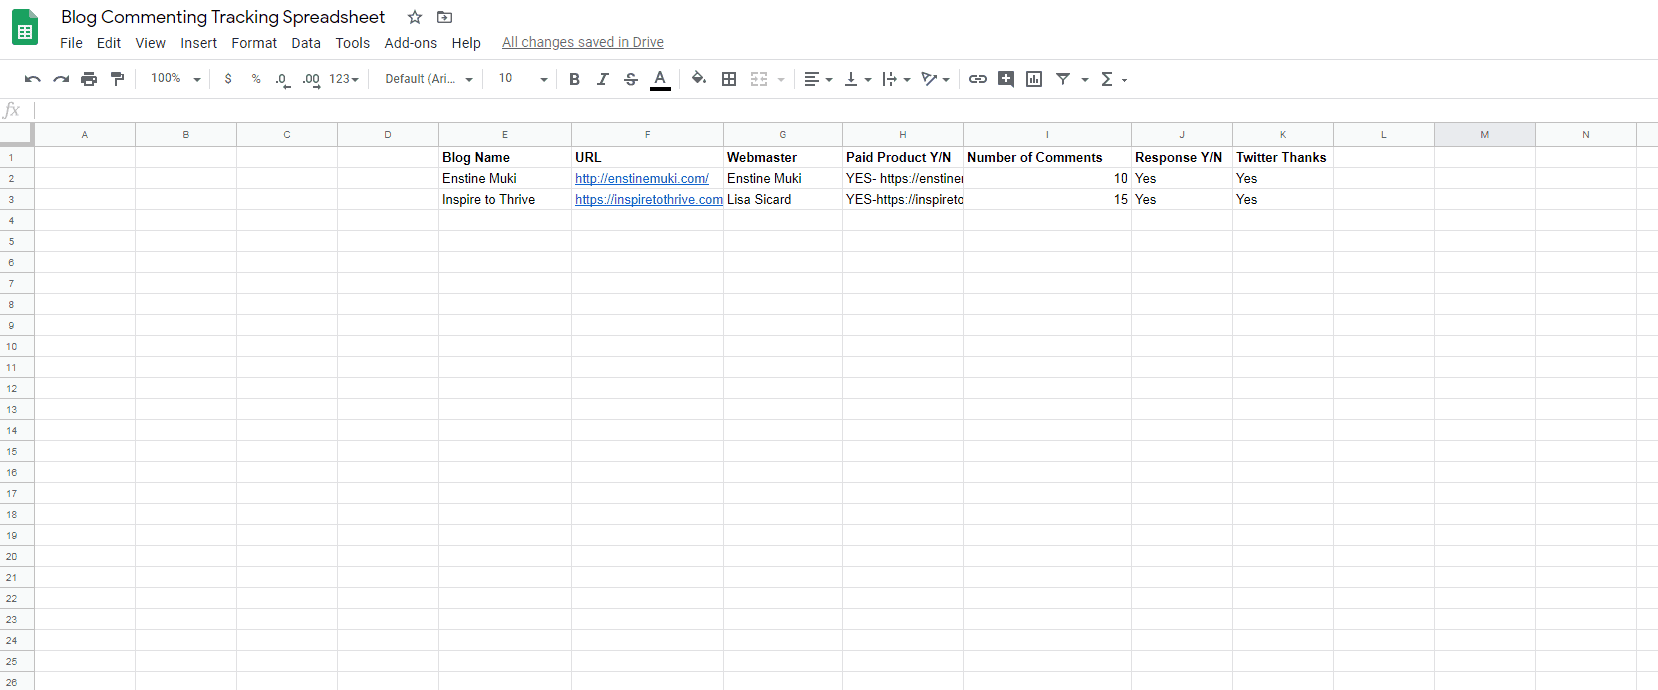 Tracking comments in a spreadsheet